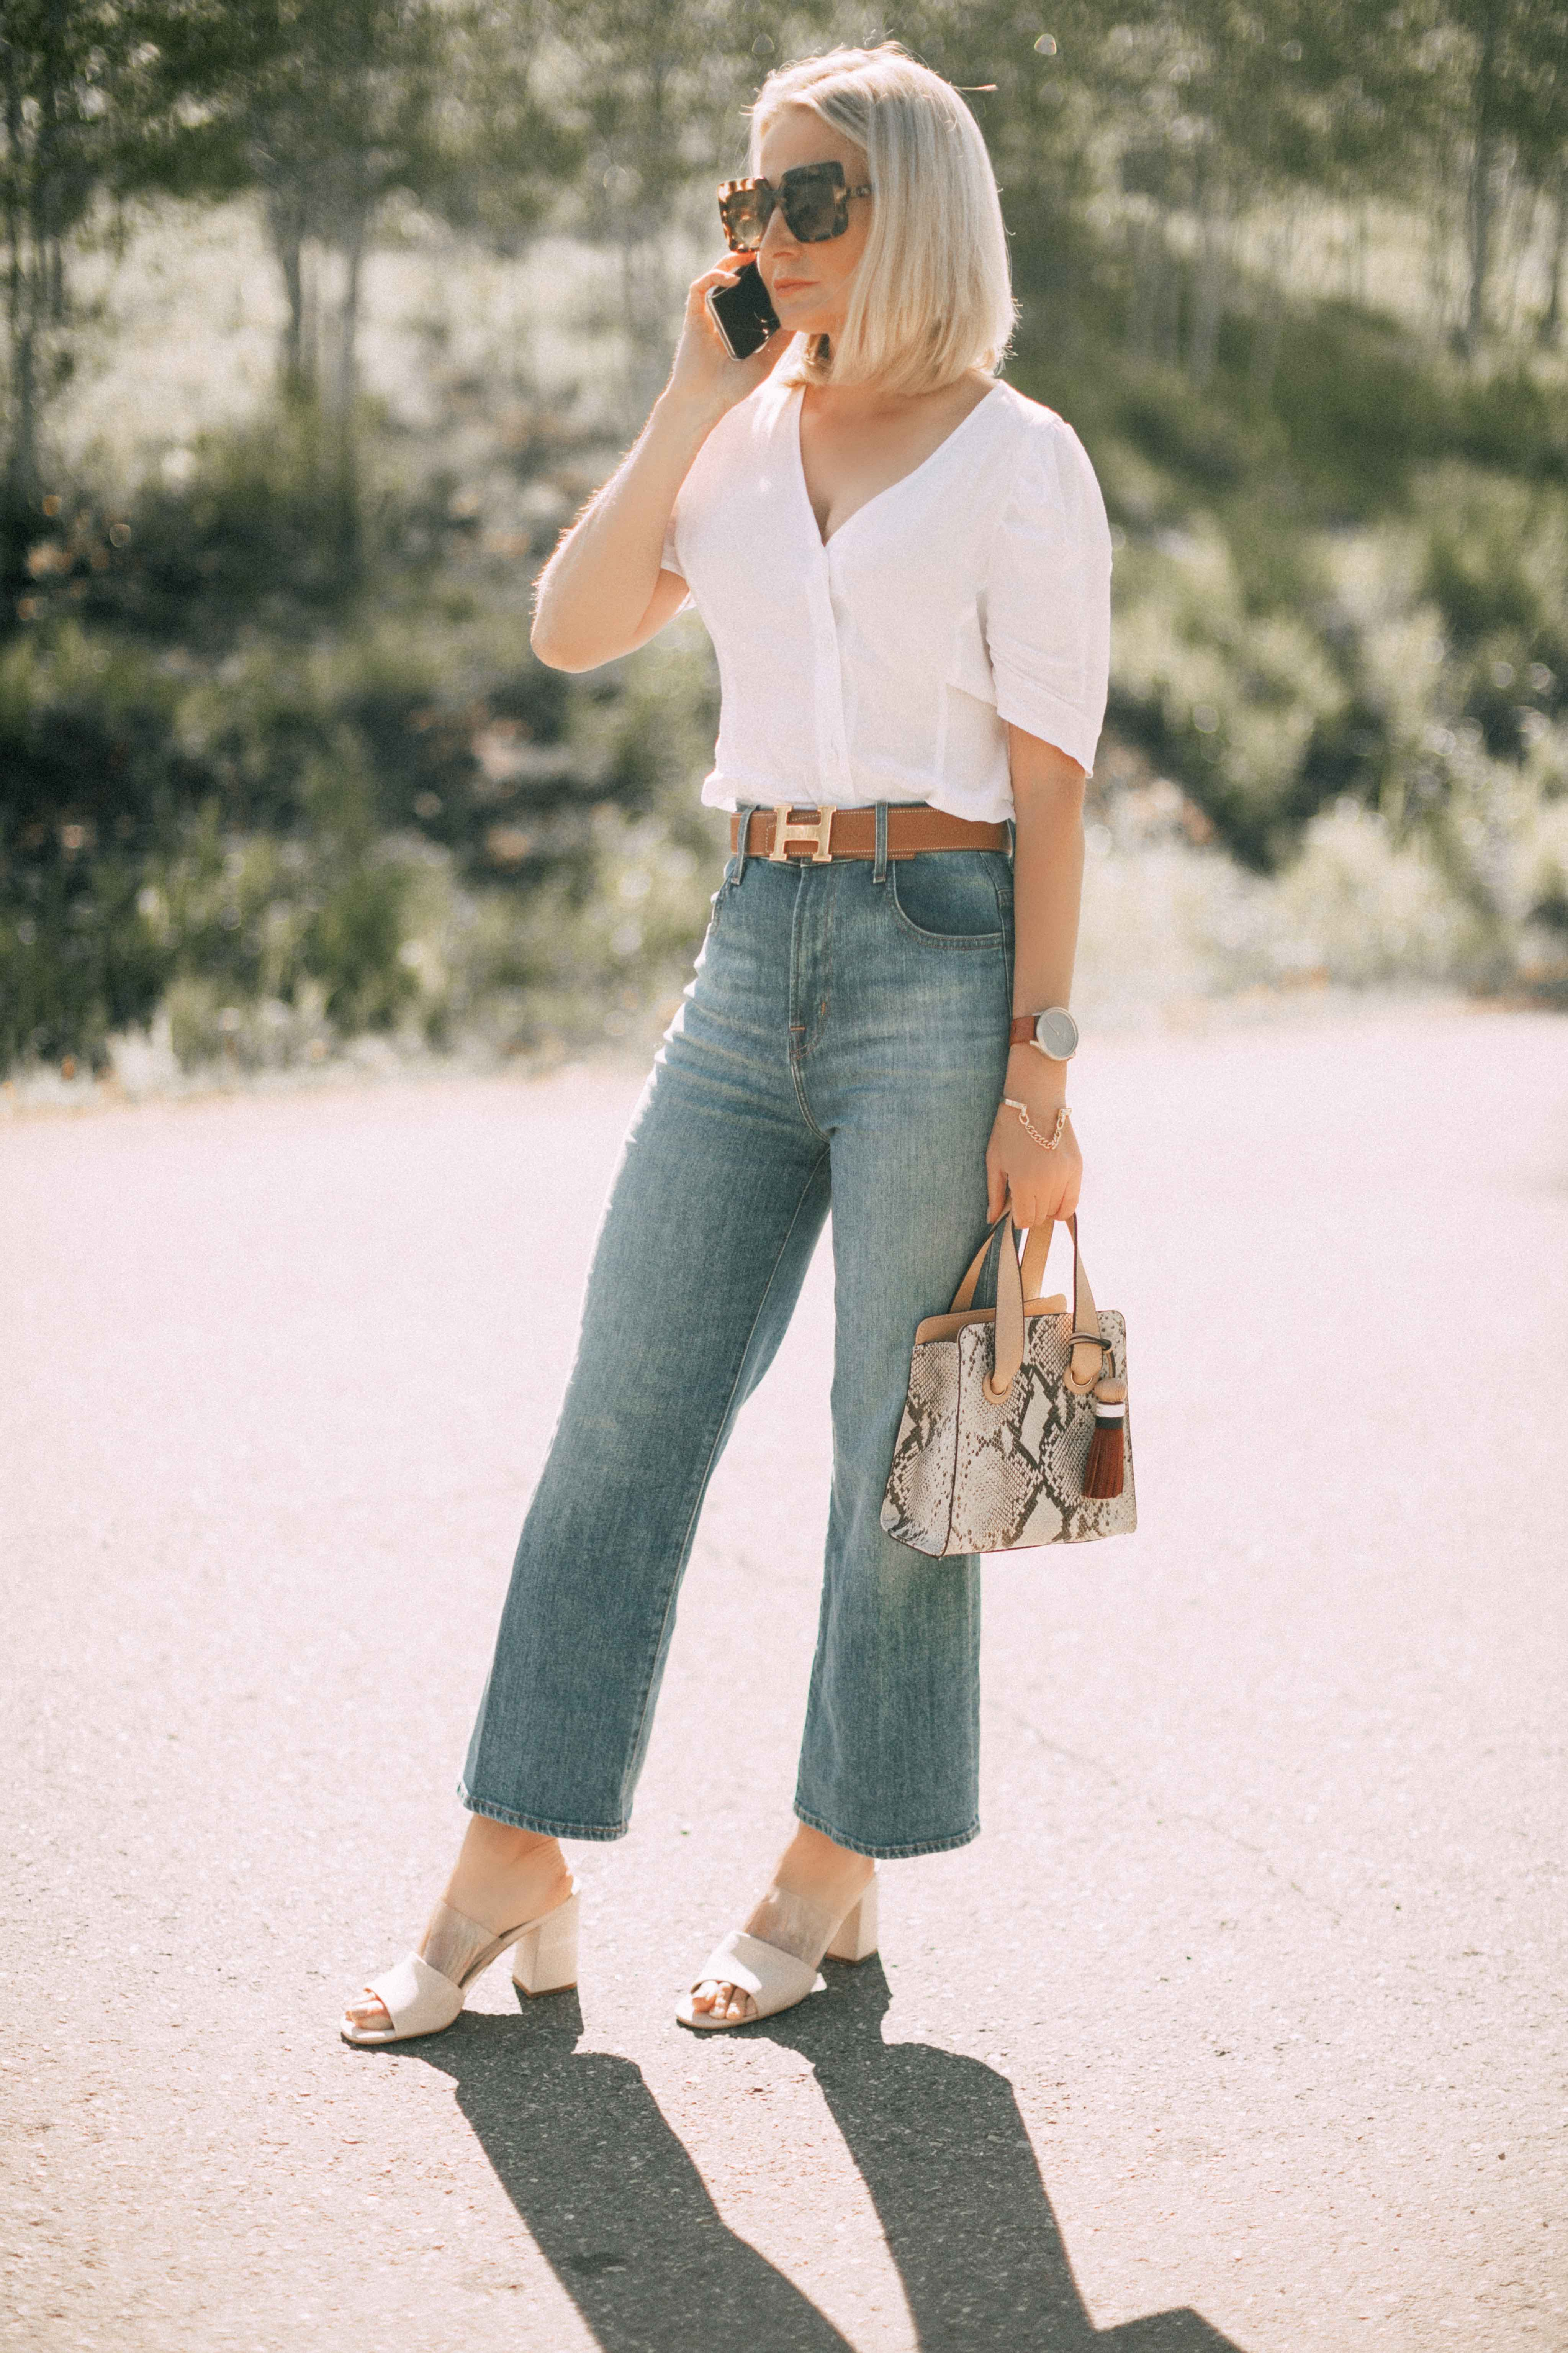 Lucite Trend, Fashion blogger Erin Busbee of BusbeeStyle.com wearing lucite mules from Vince Camuto with J Brand jeans, white Leith top, Hermes belt, and a python print Vince Camuto bag in Telluride, Colorado